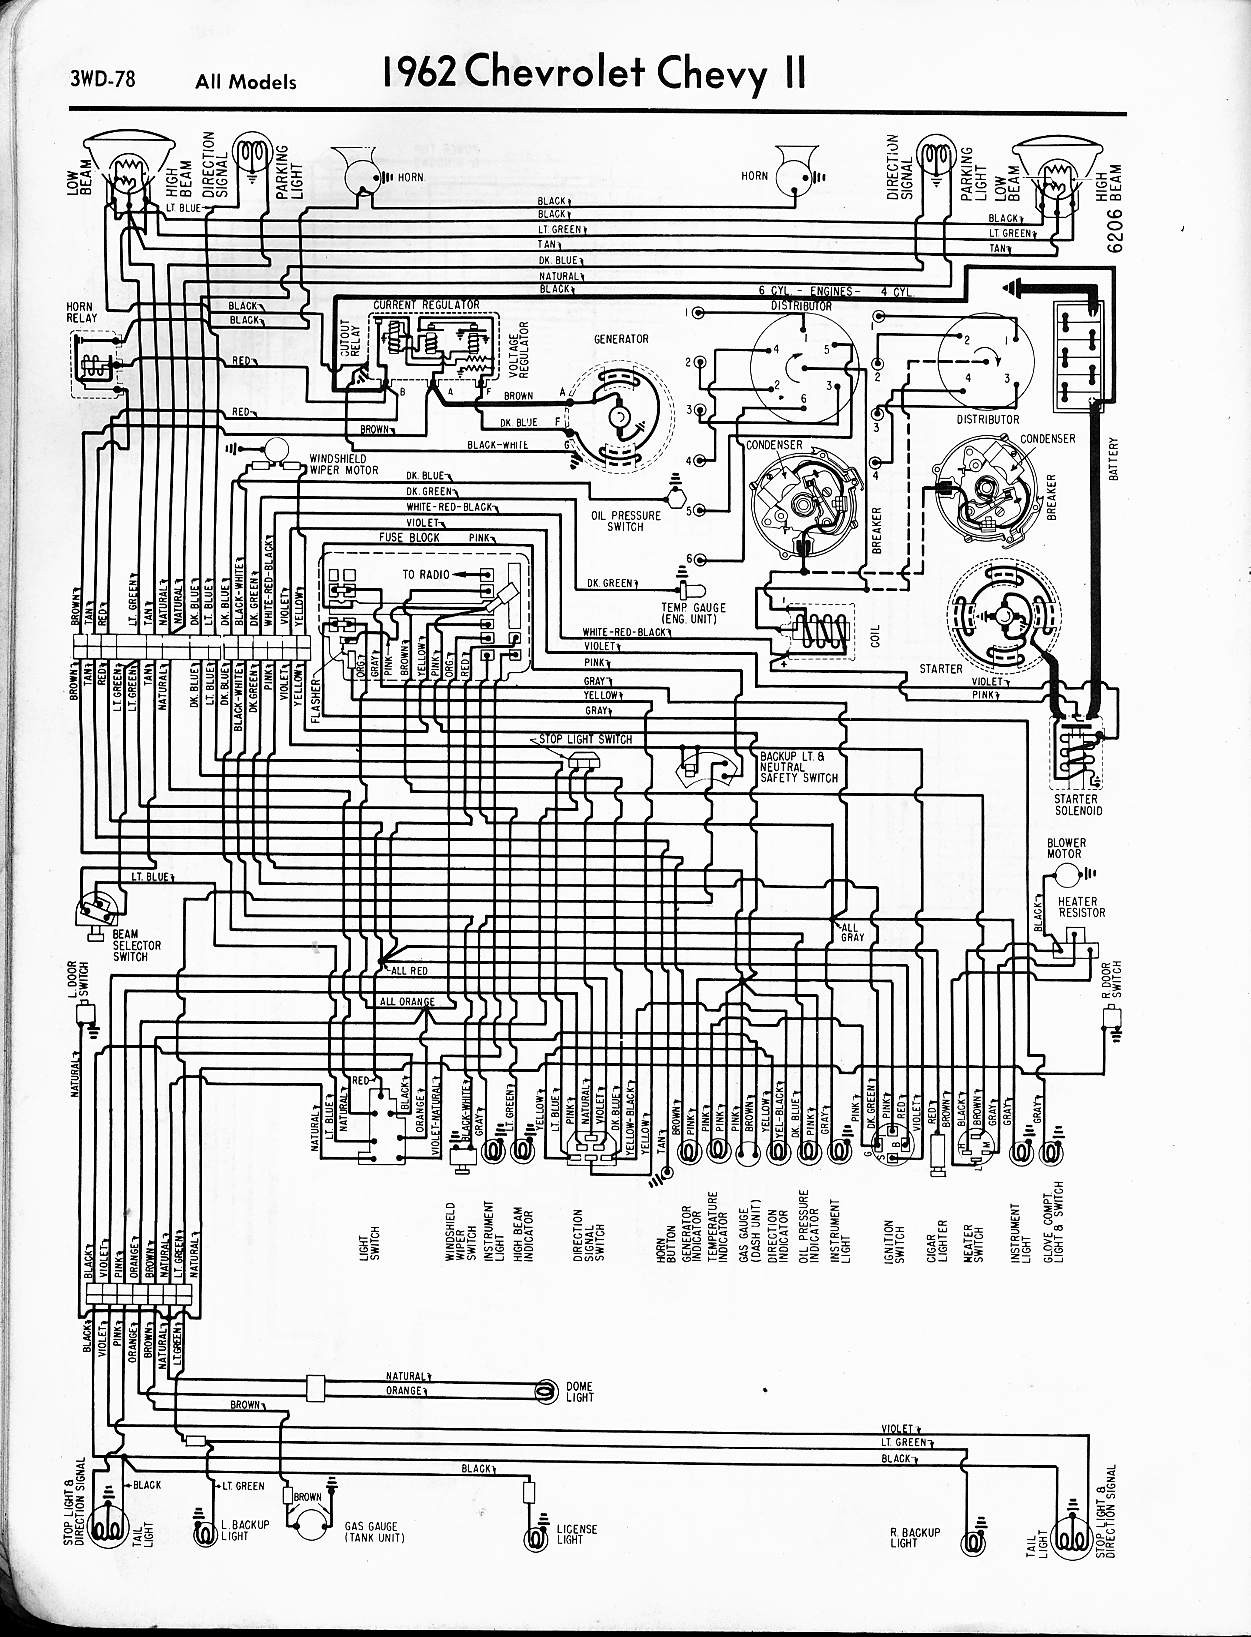 2007 Chevy Cobalt Cooling Fan Wiring Diagram Chevrolet 2000 Impala Engine Schematics Diagrams 57 65